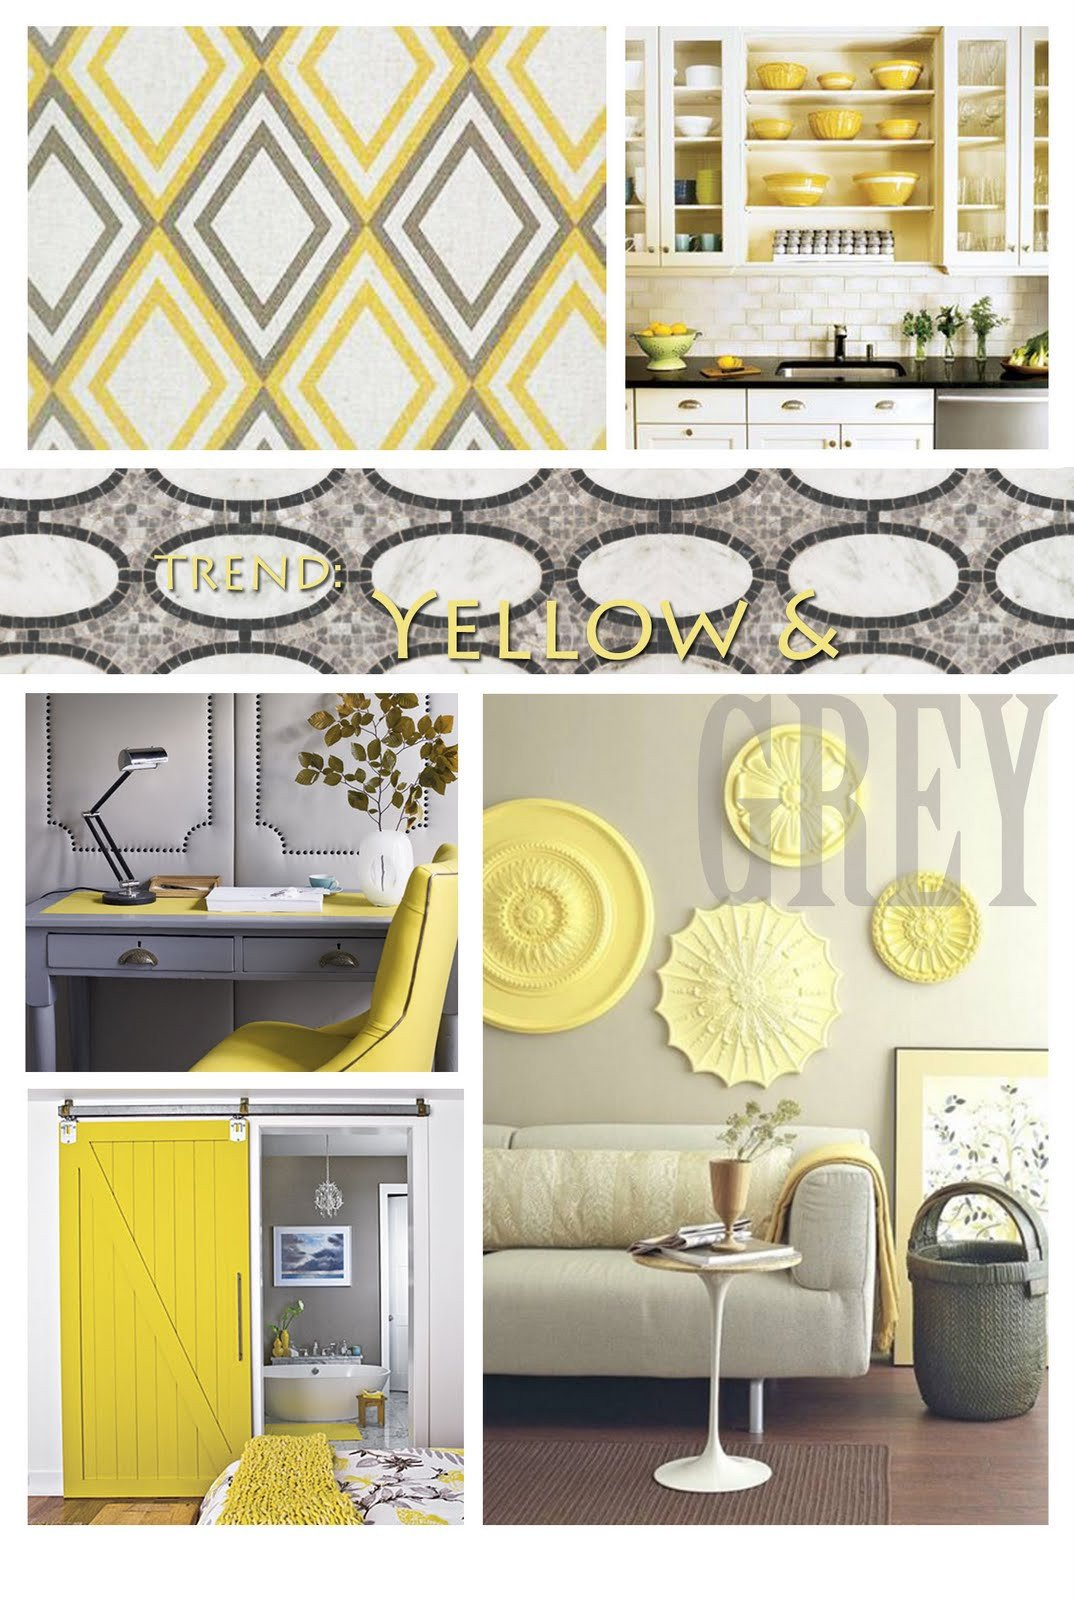 Yellow and Grey Room Decor New sincerely Your Designs Decorating with Yellow and Grey